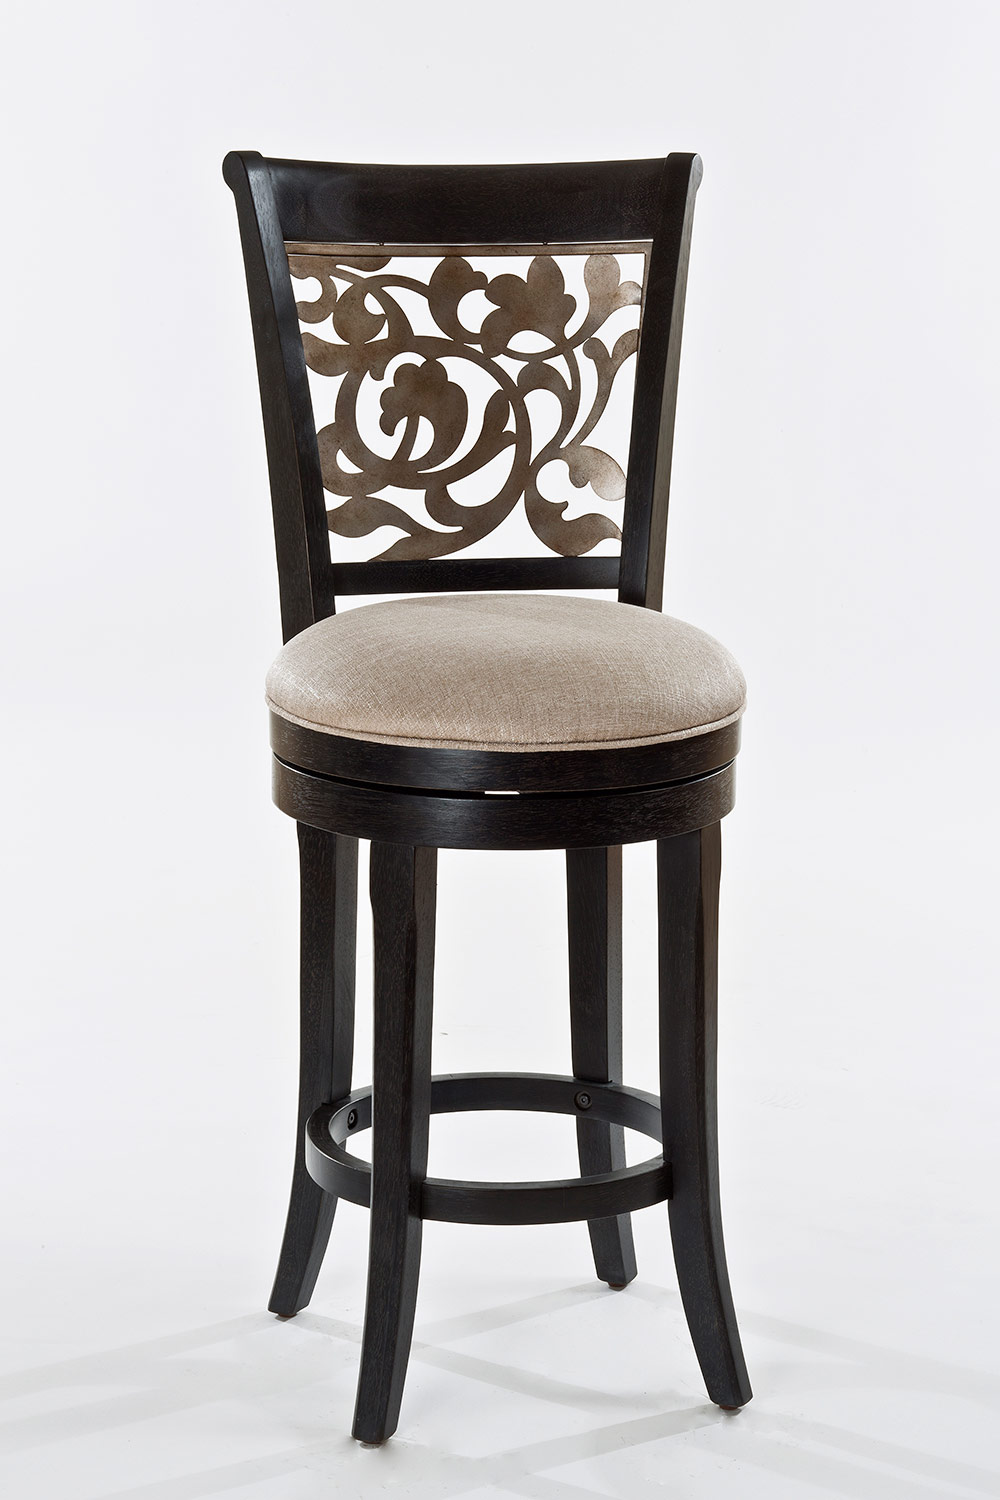 Hillsdale Bennington Swivel Counter Stool - Black Distressed Gray - Putty Fabric